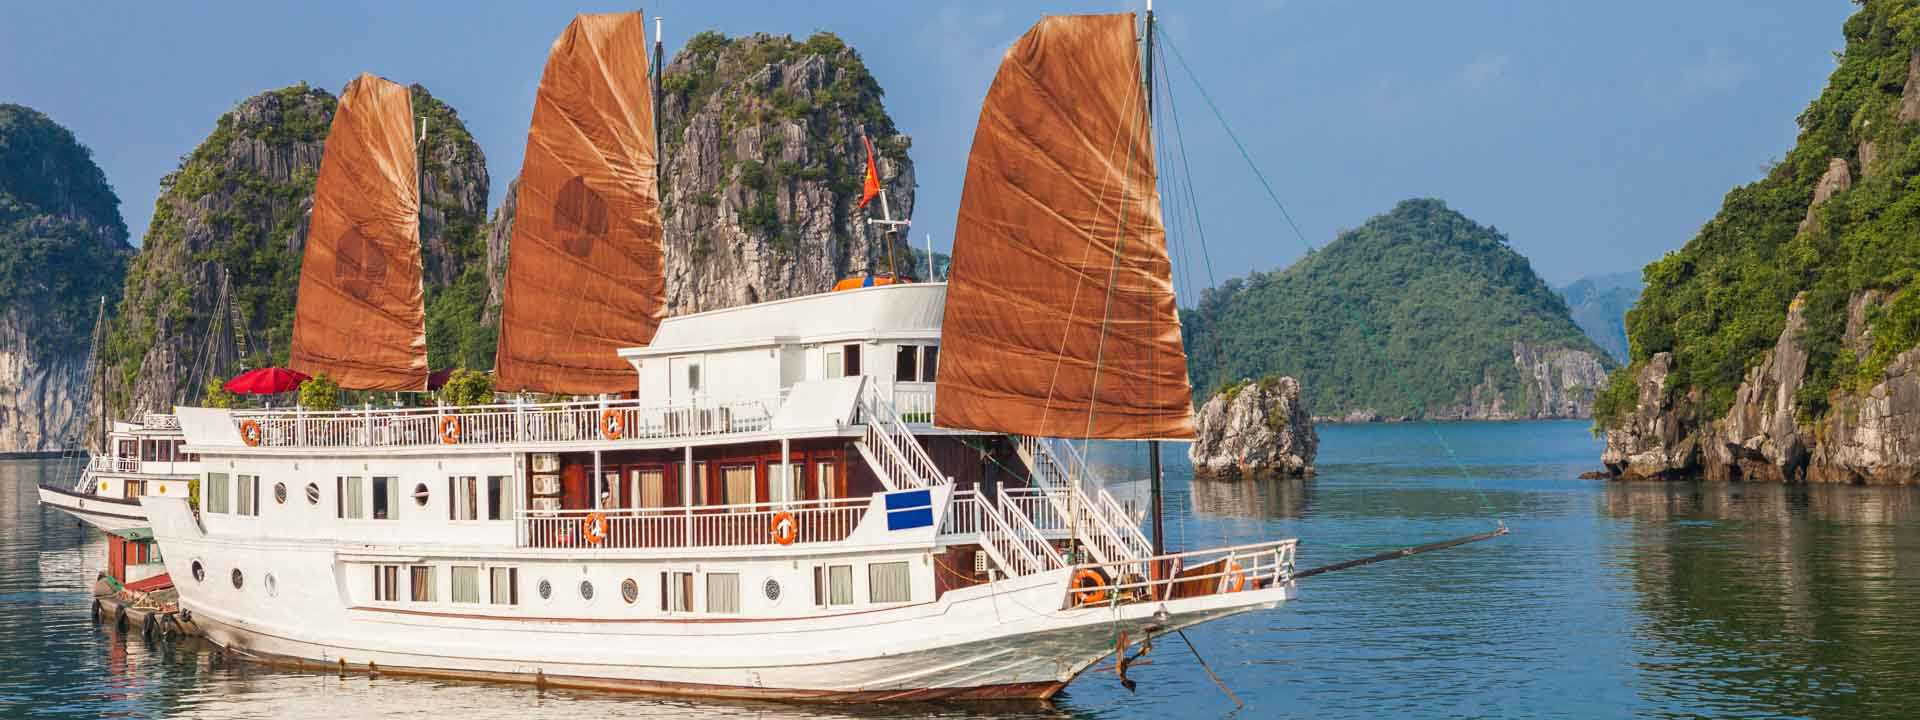 Ha Long archipel au large du Golfe du Tonkin 3 jours